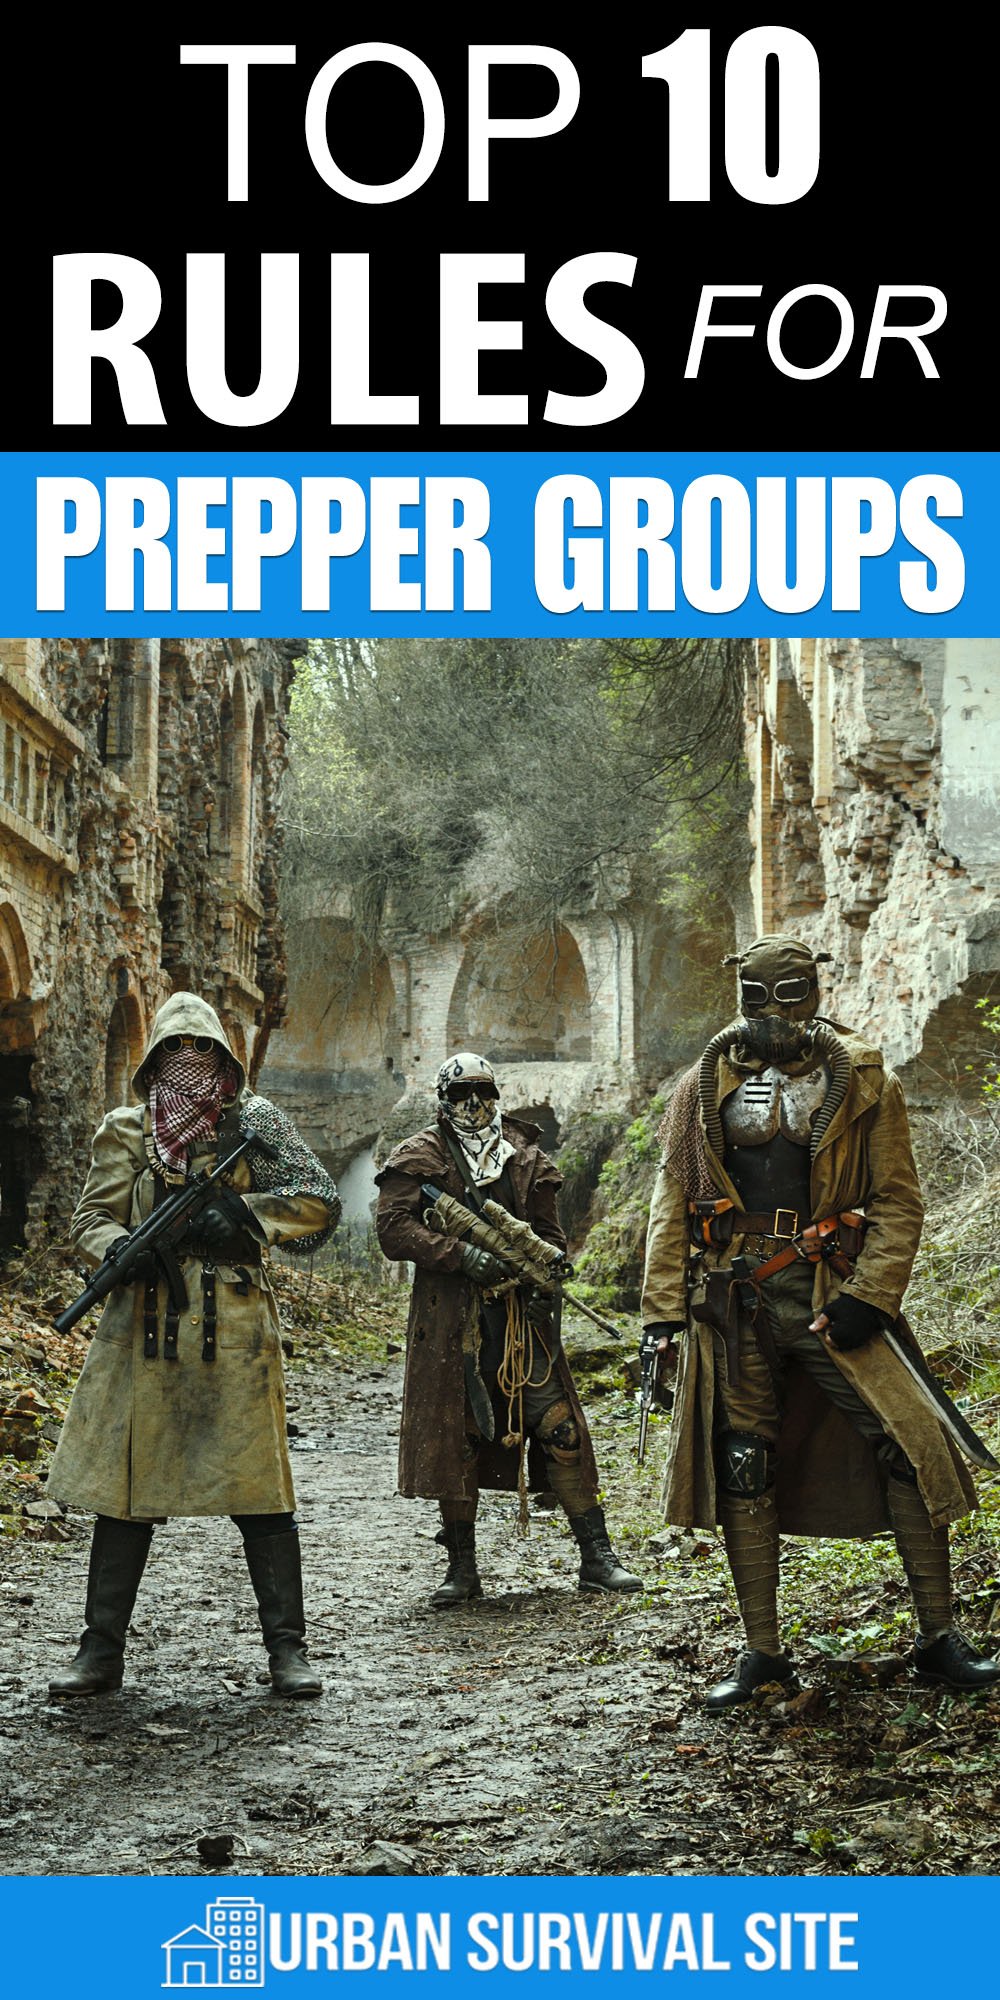 Top 10 Rules for Prepper Groups